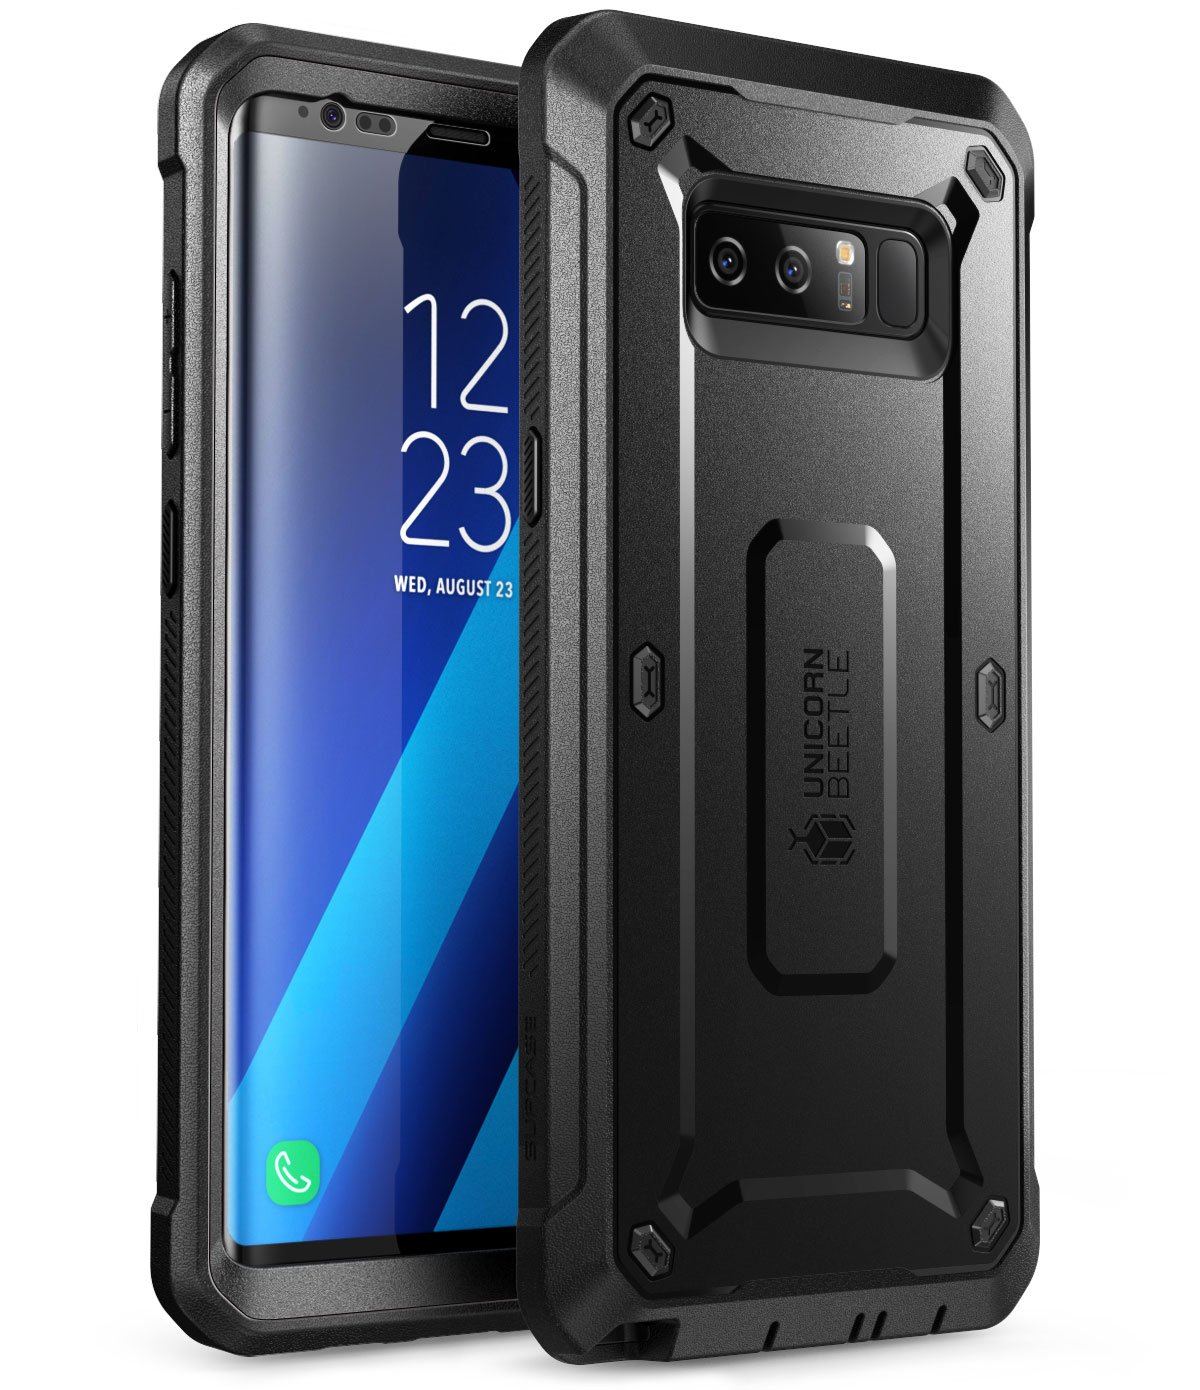 SUPCASE Unicorn Beetle Shield Series Case Designed for Galaxy Note 8, with Built-in Screen Protector Full-Body Rugged Holster Case for Galaxy Note 8 (2017 Release) (Black) by SupCase